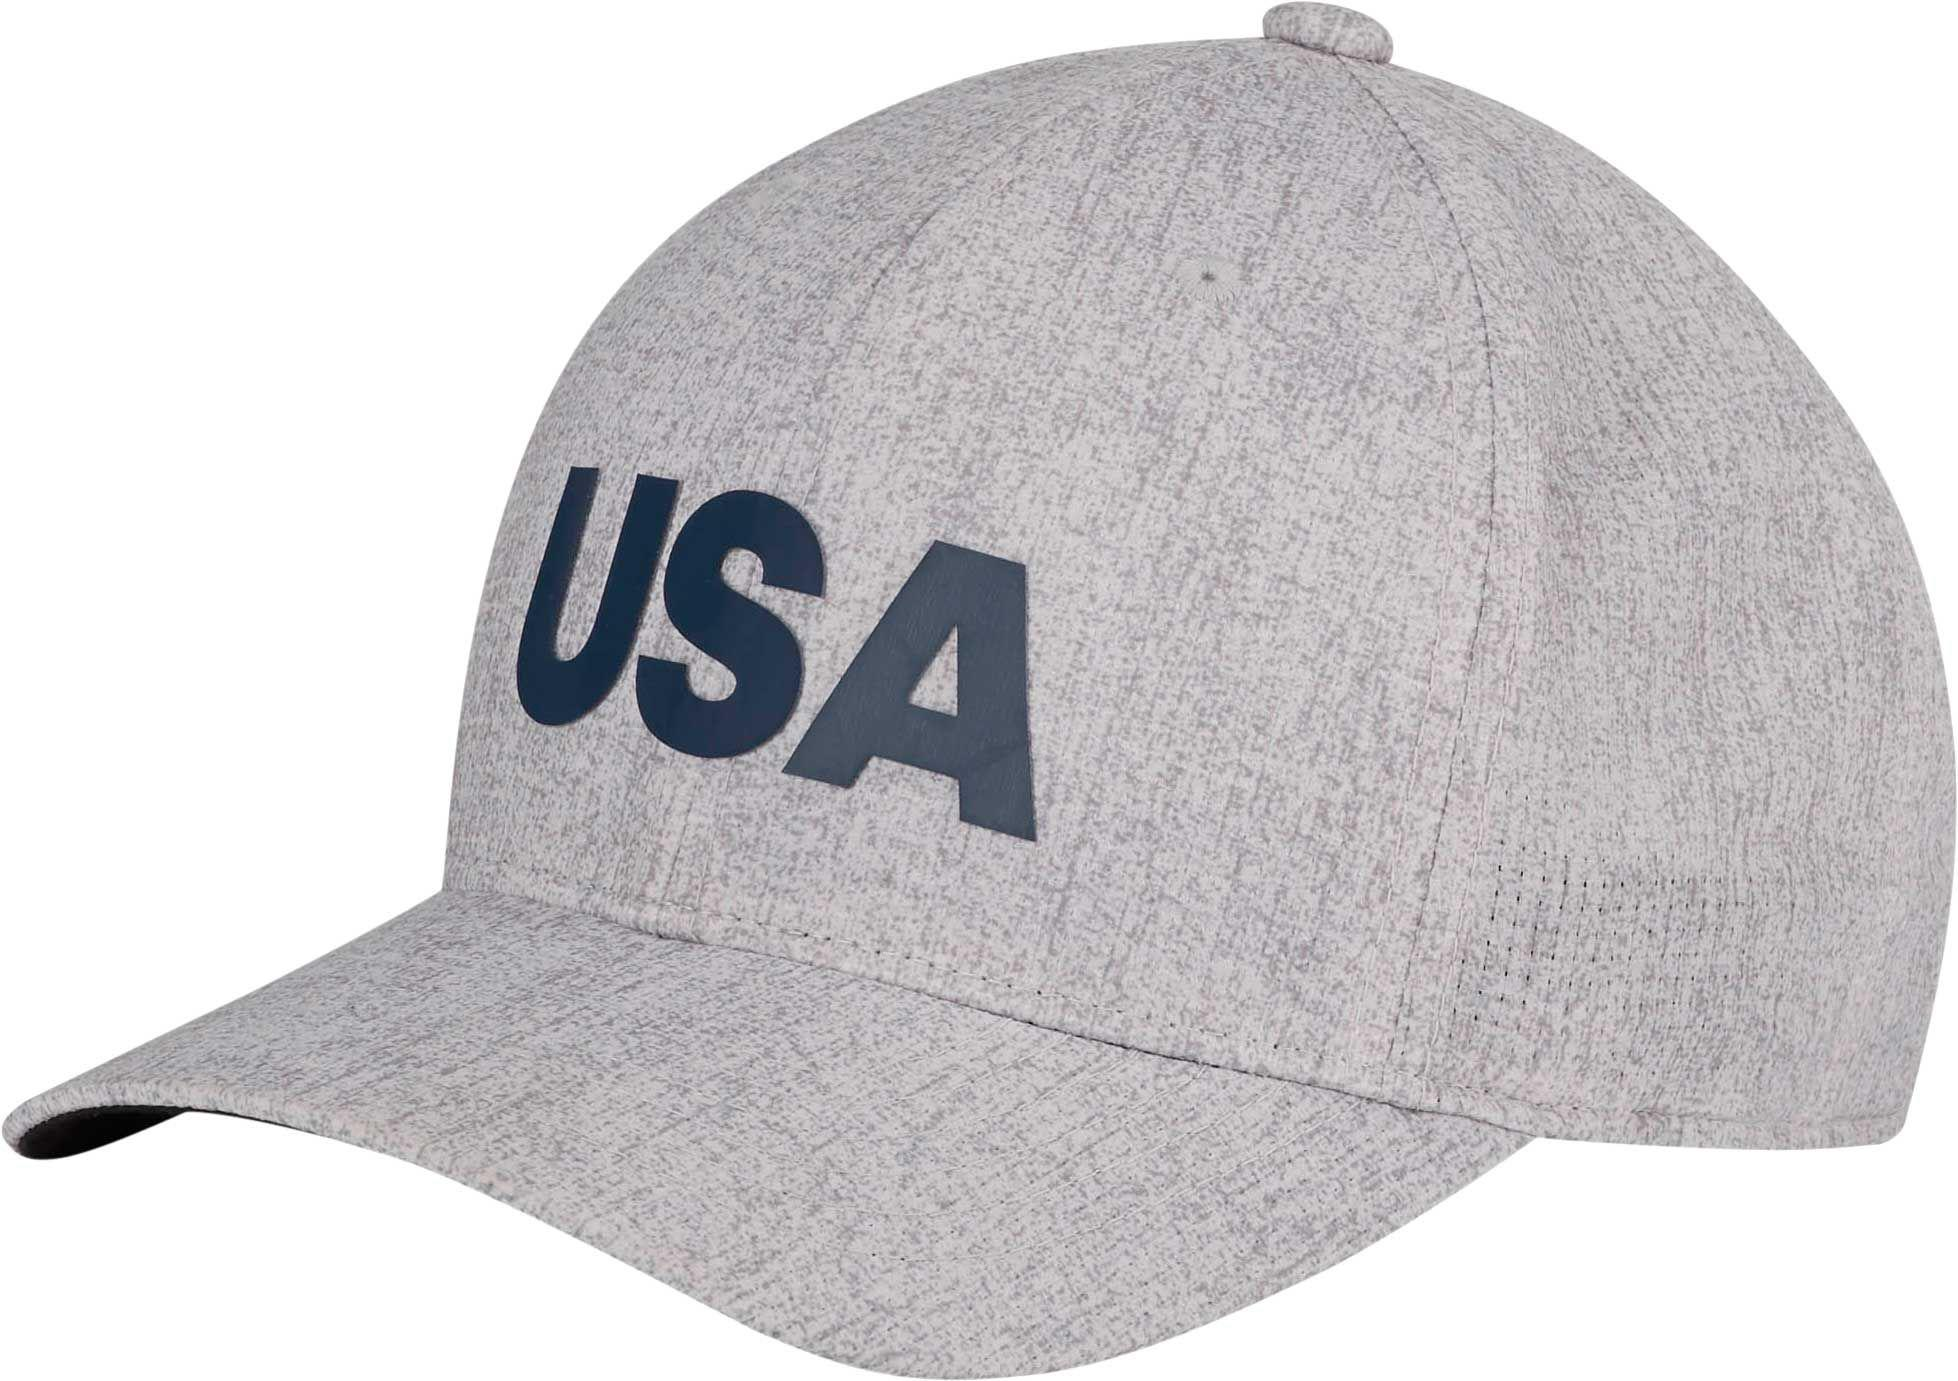 d8f33254339 Lyst - adidas Heathered Usa Golf Hat in Gray for Men